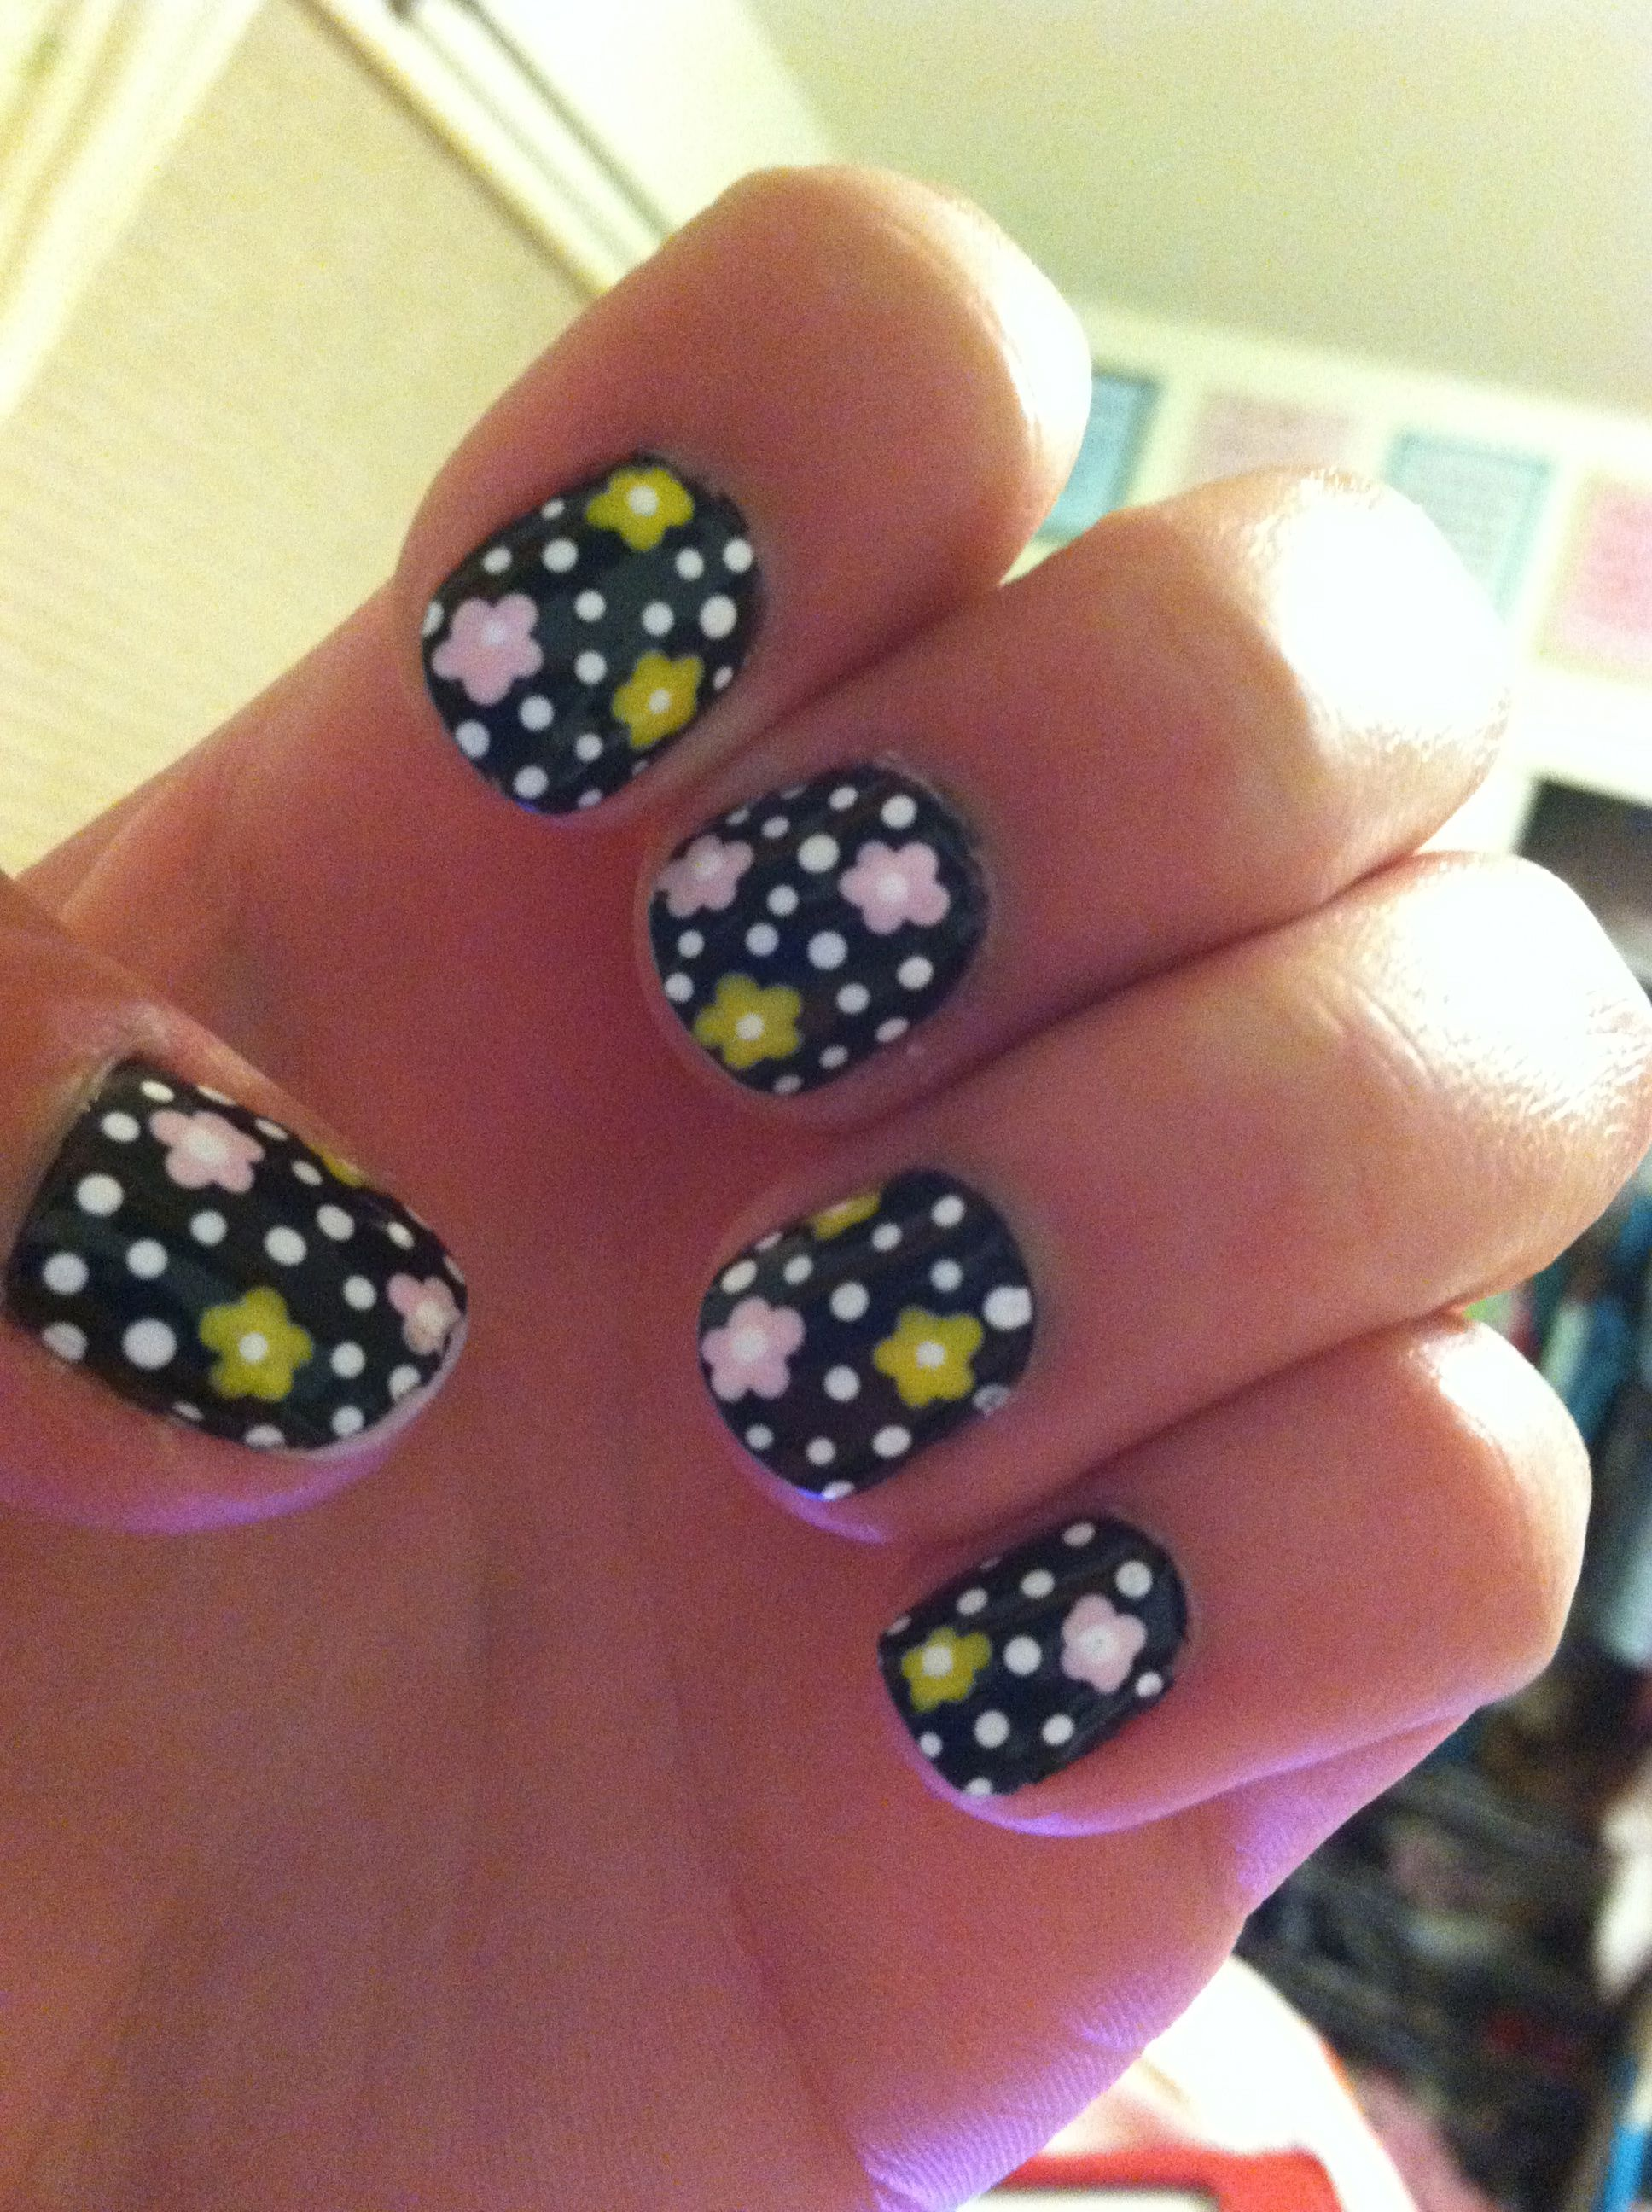 Black Nails With Pink And Yellow Flowers And White Dots Nail Art Dot Nail Art Dots Nails Nail Art